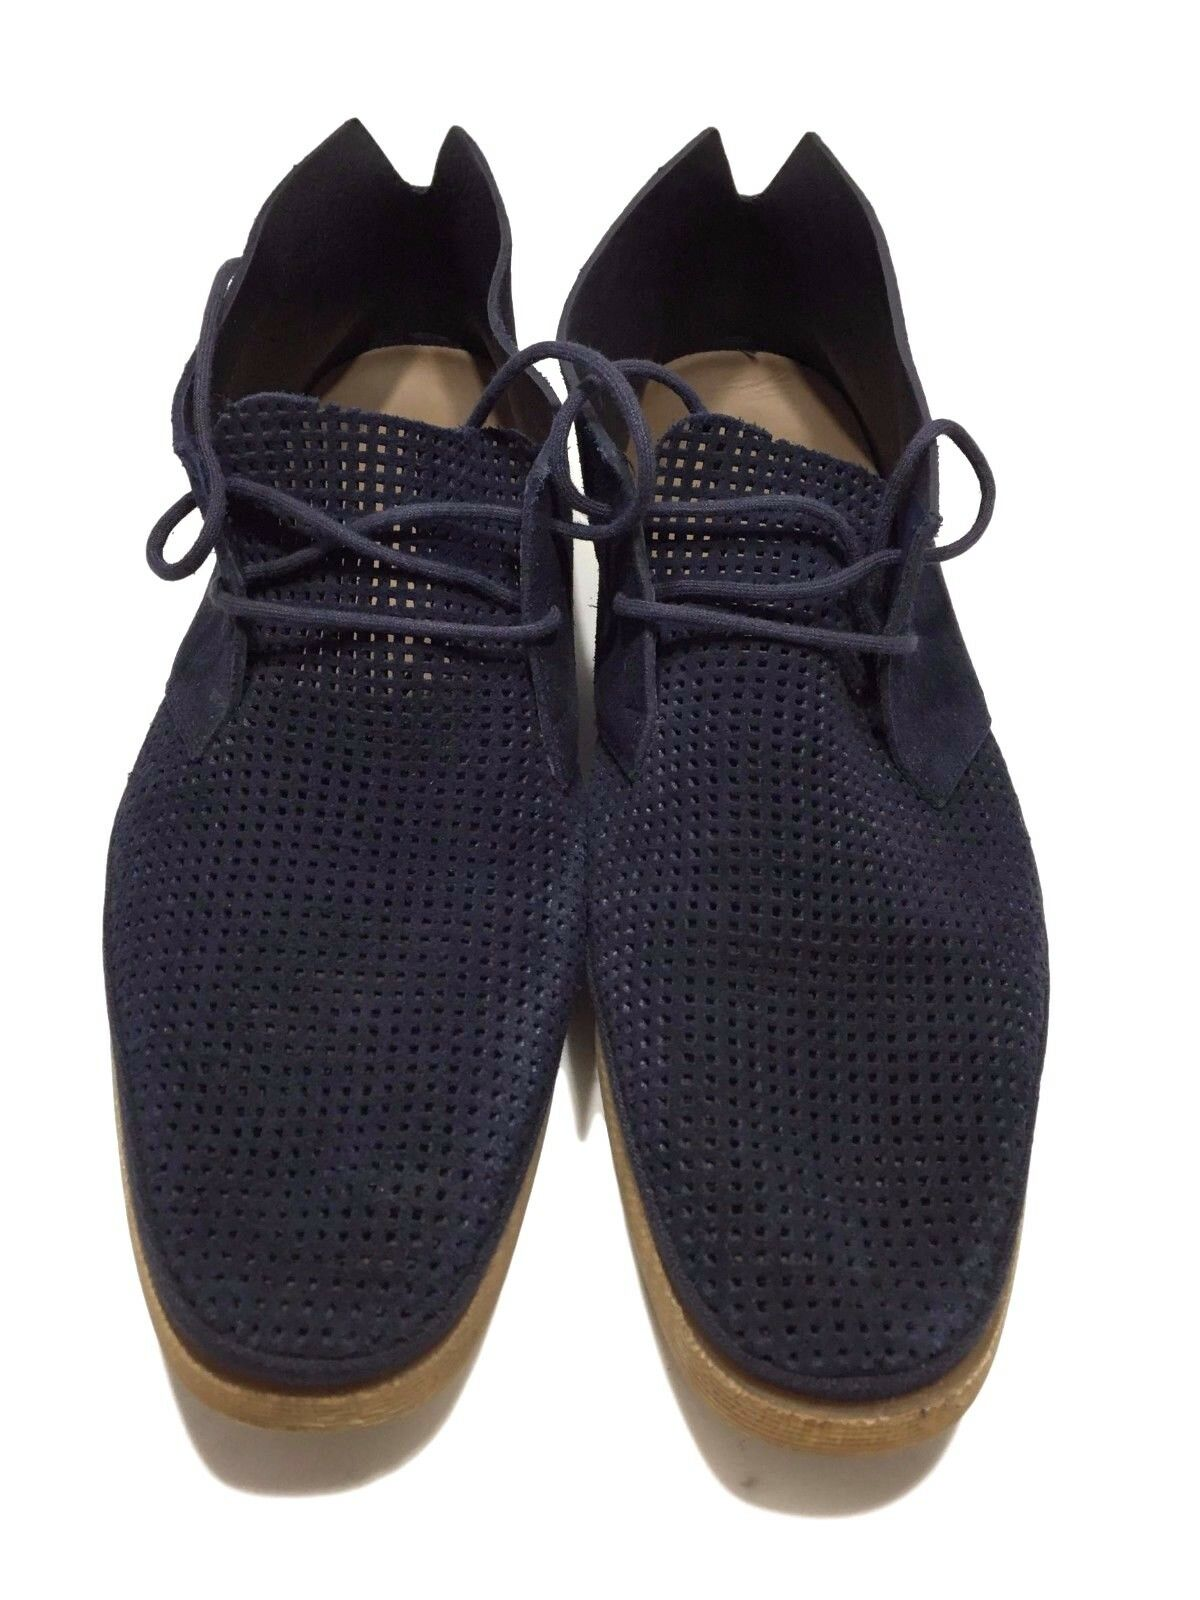 BOSS HUGO BOSS MEN'S NAVY PERFORATED SUEDE LACE UP SHOES, 8 8.5,  495